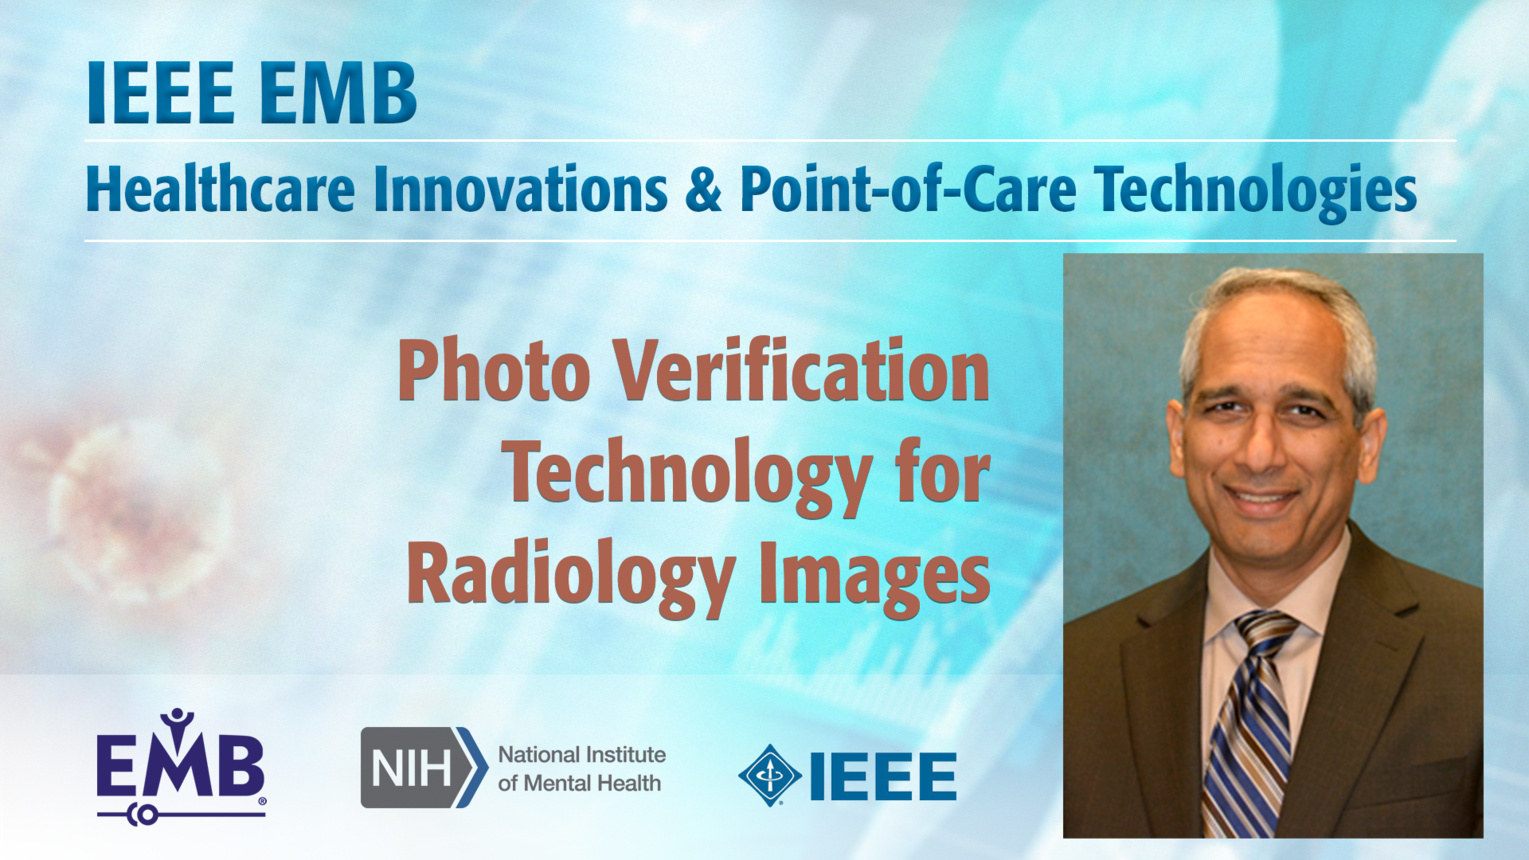 Photo Verification Technology for Radiology Images - Srini Tridandapani - IEEE EMBS at NIH, 2019